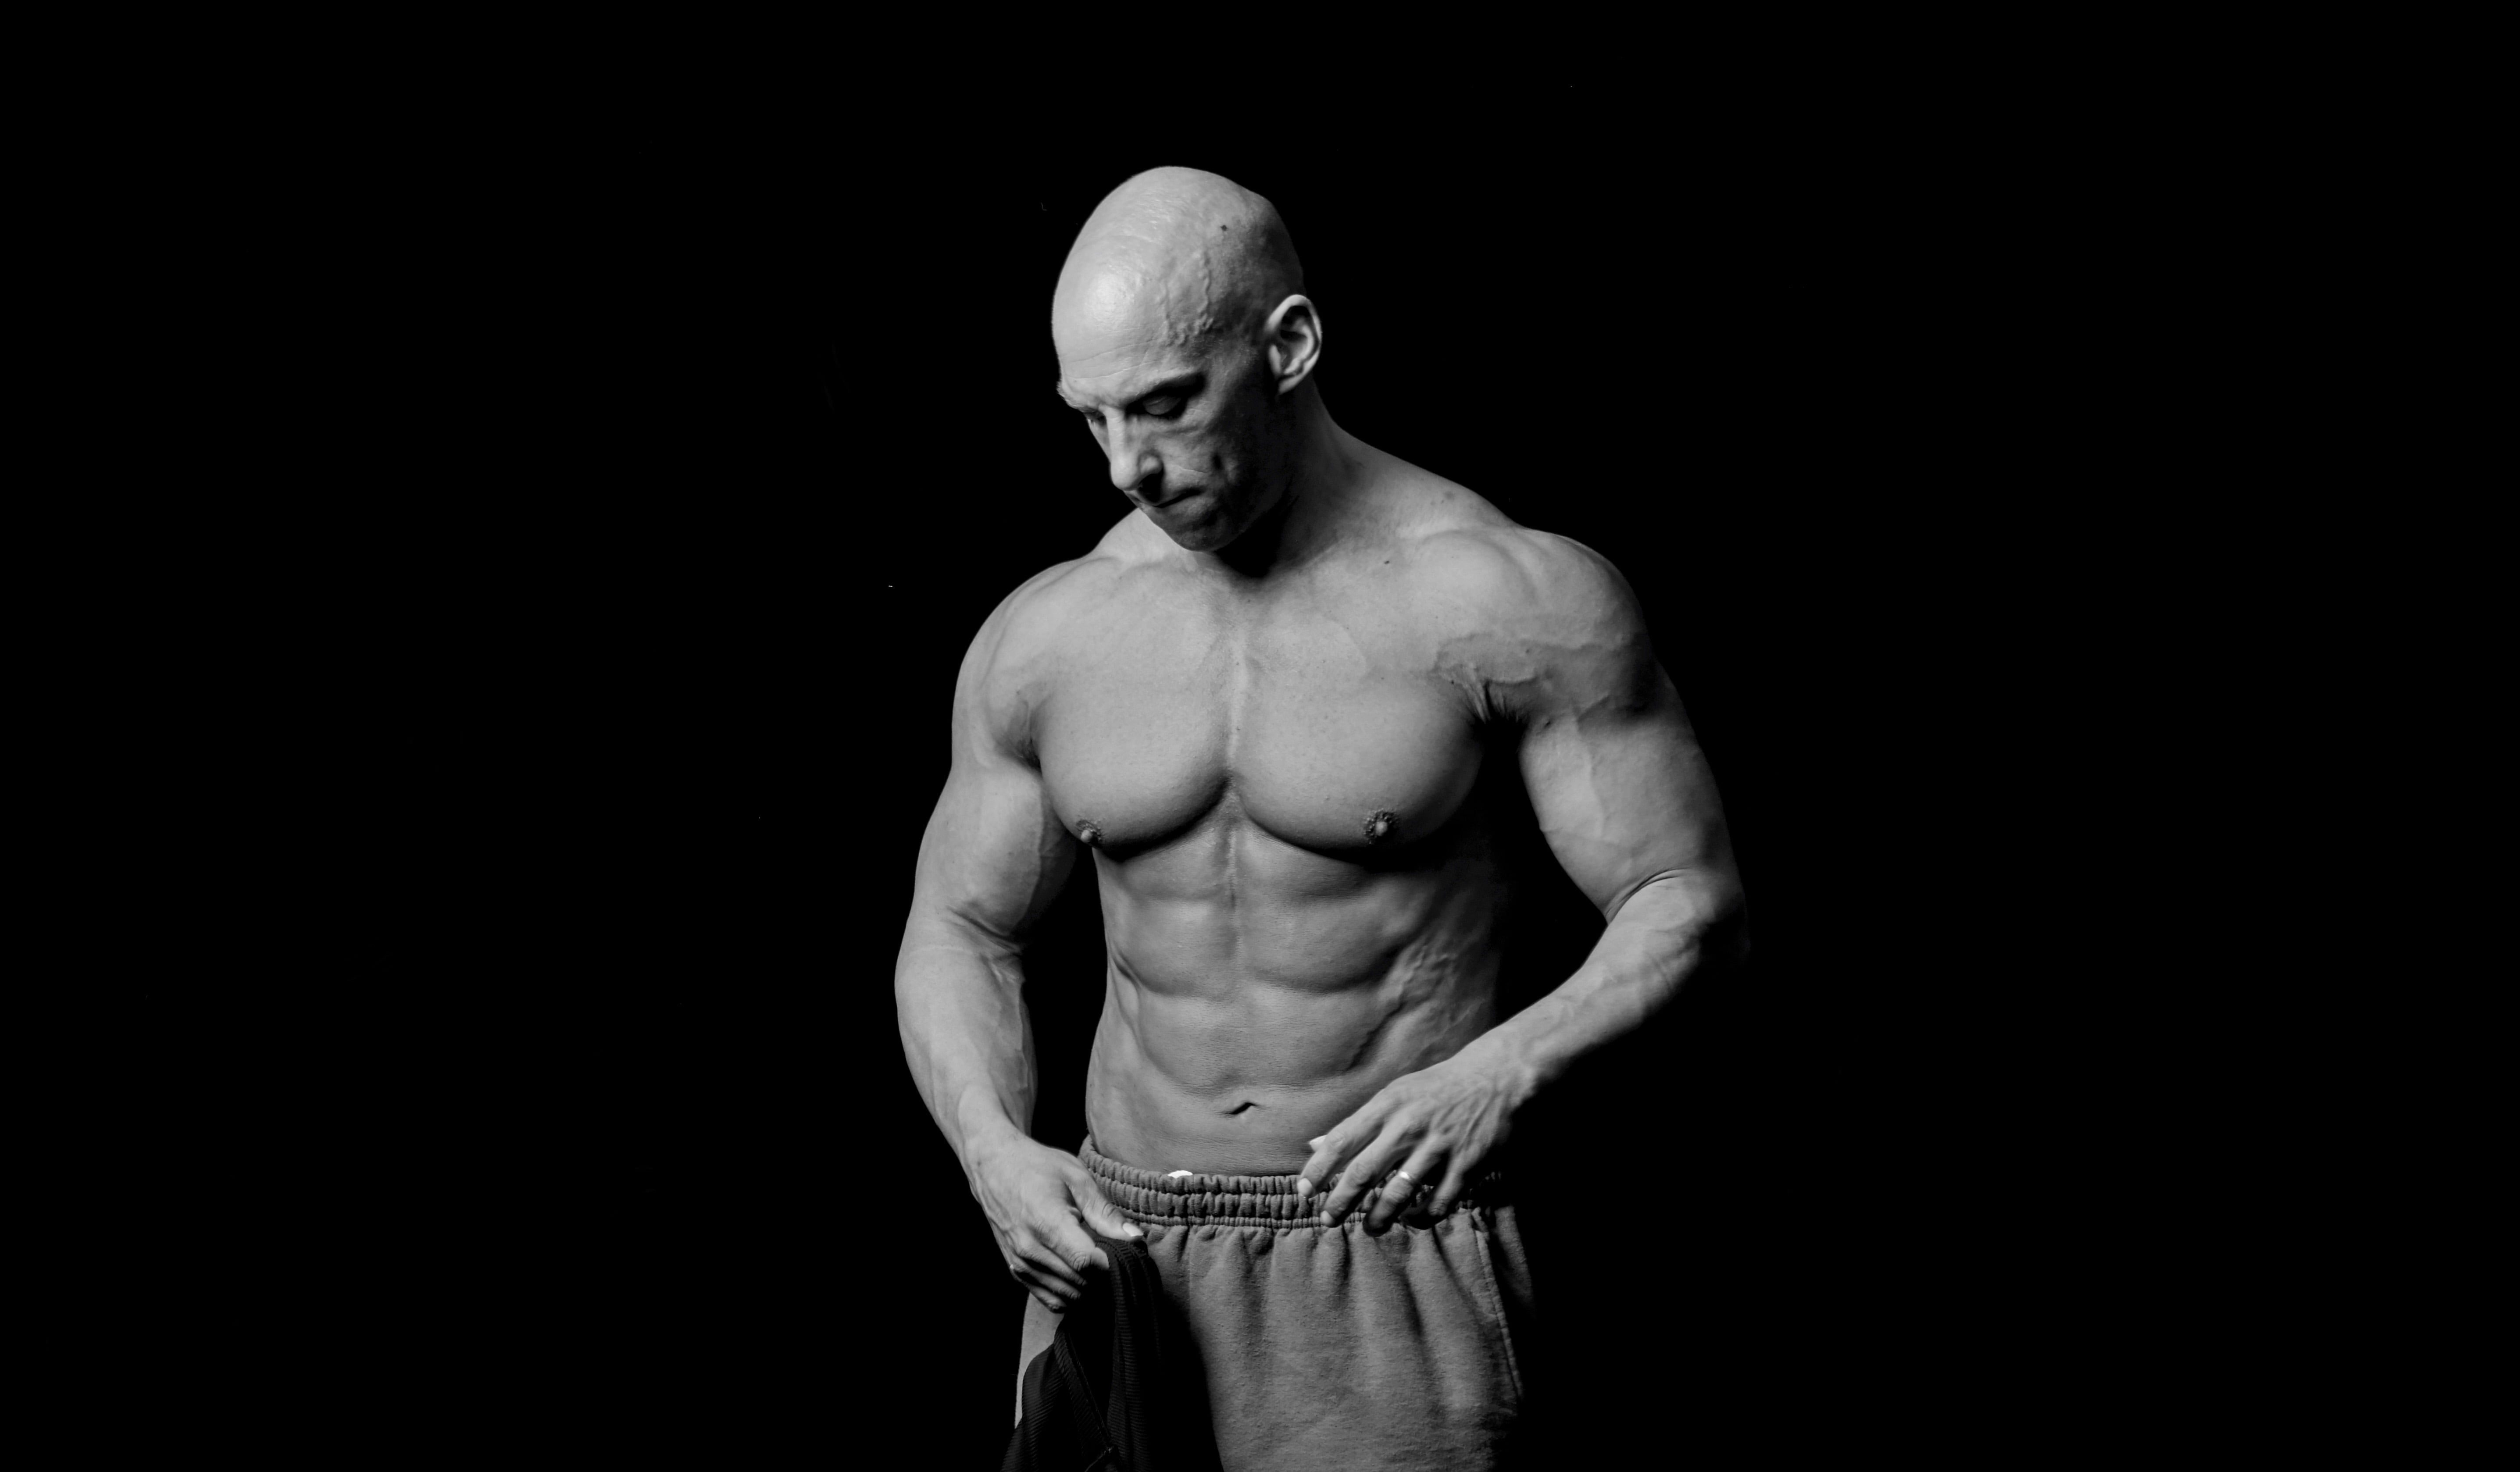 The Jacked Athlete 31 Plan Part 2 – The Overall Plan